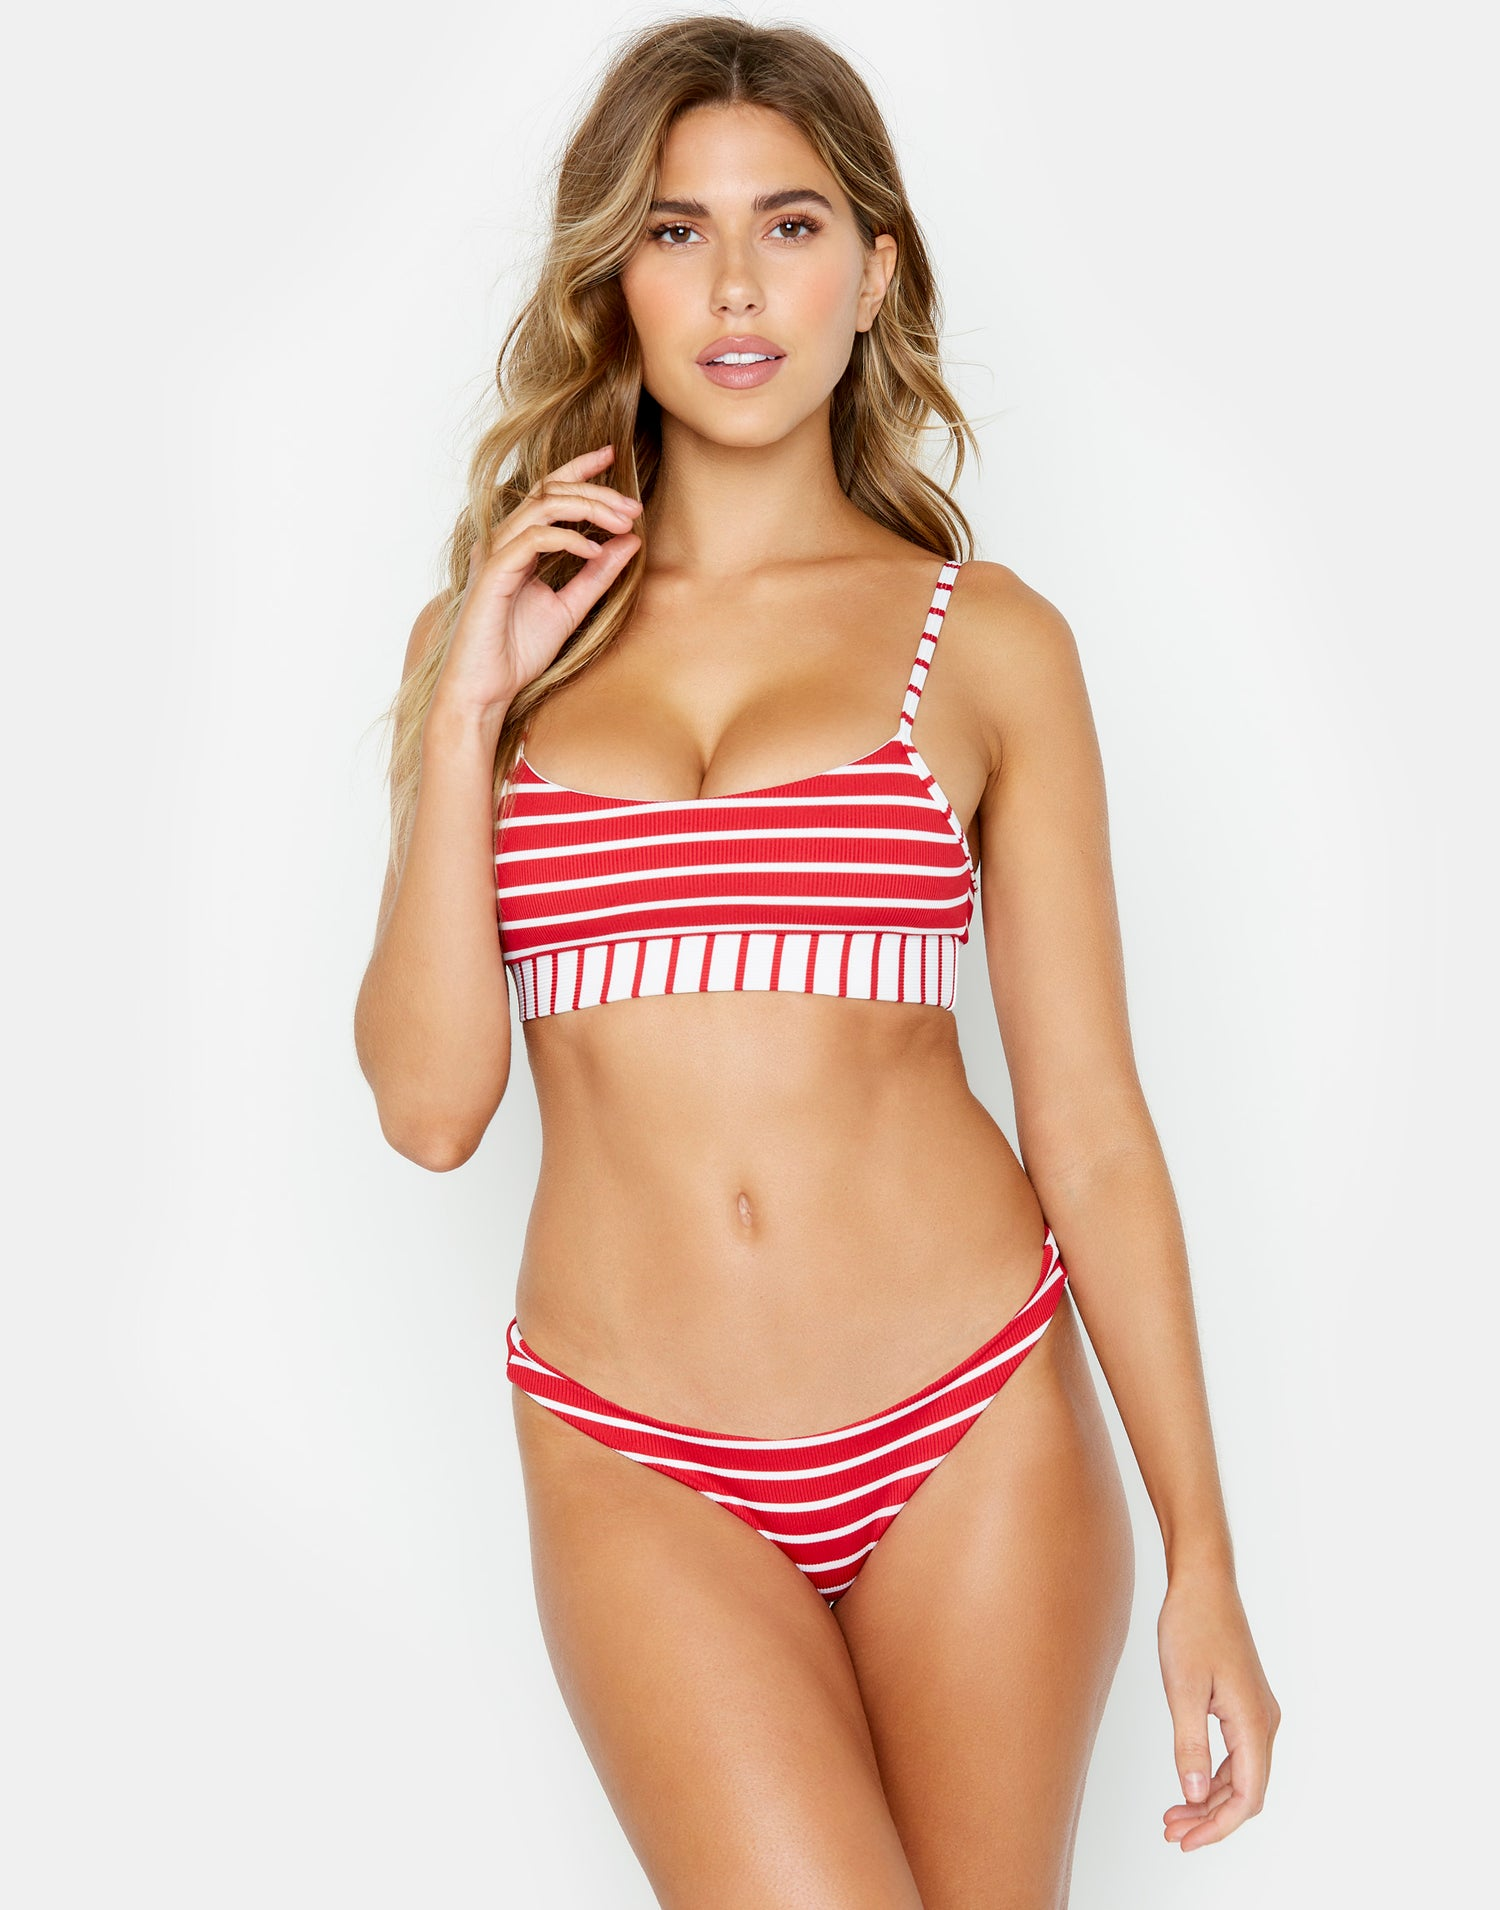 Angela Bikini Bottom in Red Stripe Front View